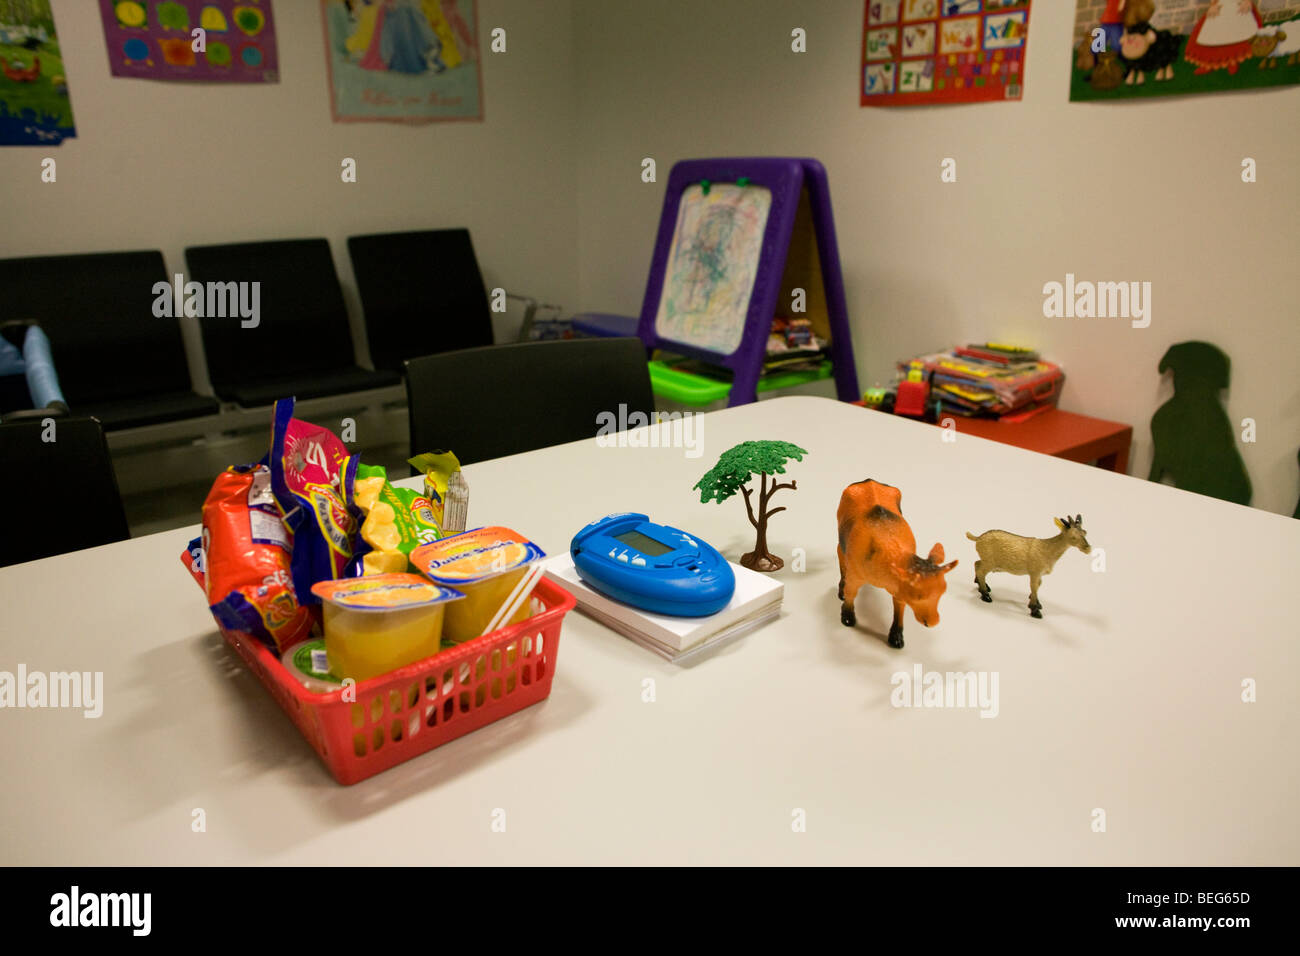 Childrens Toys In A Uk Border Agency S Immigration Detention Room